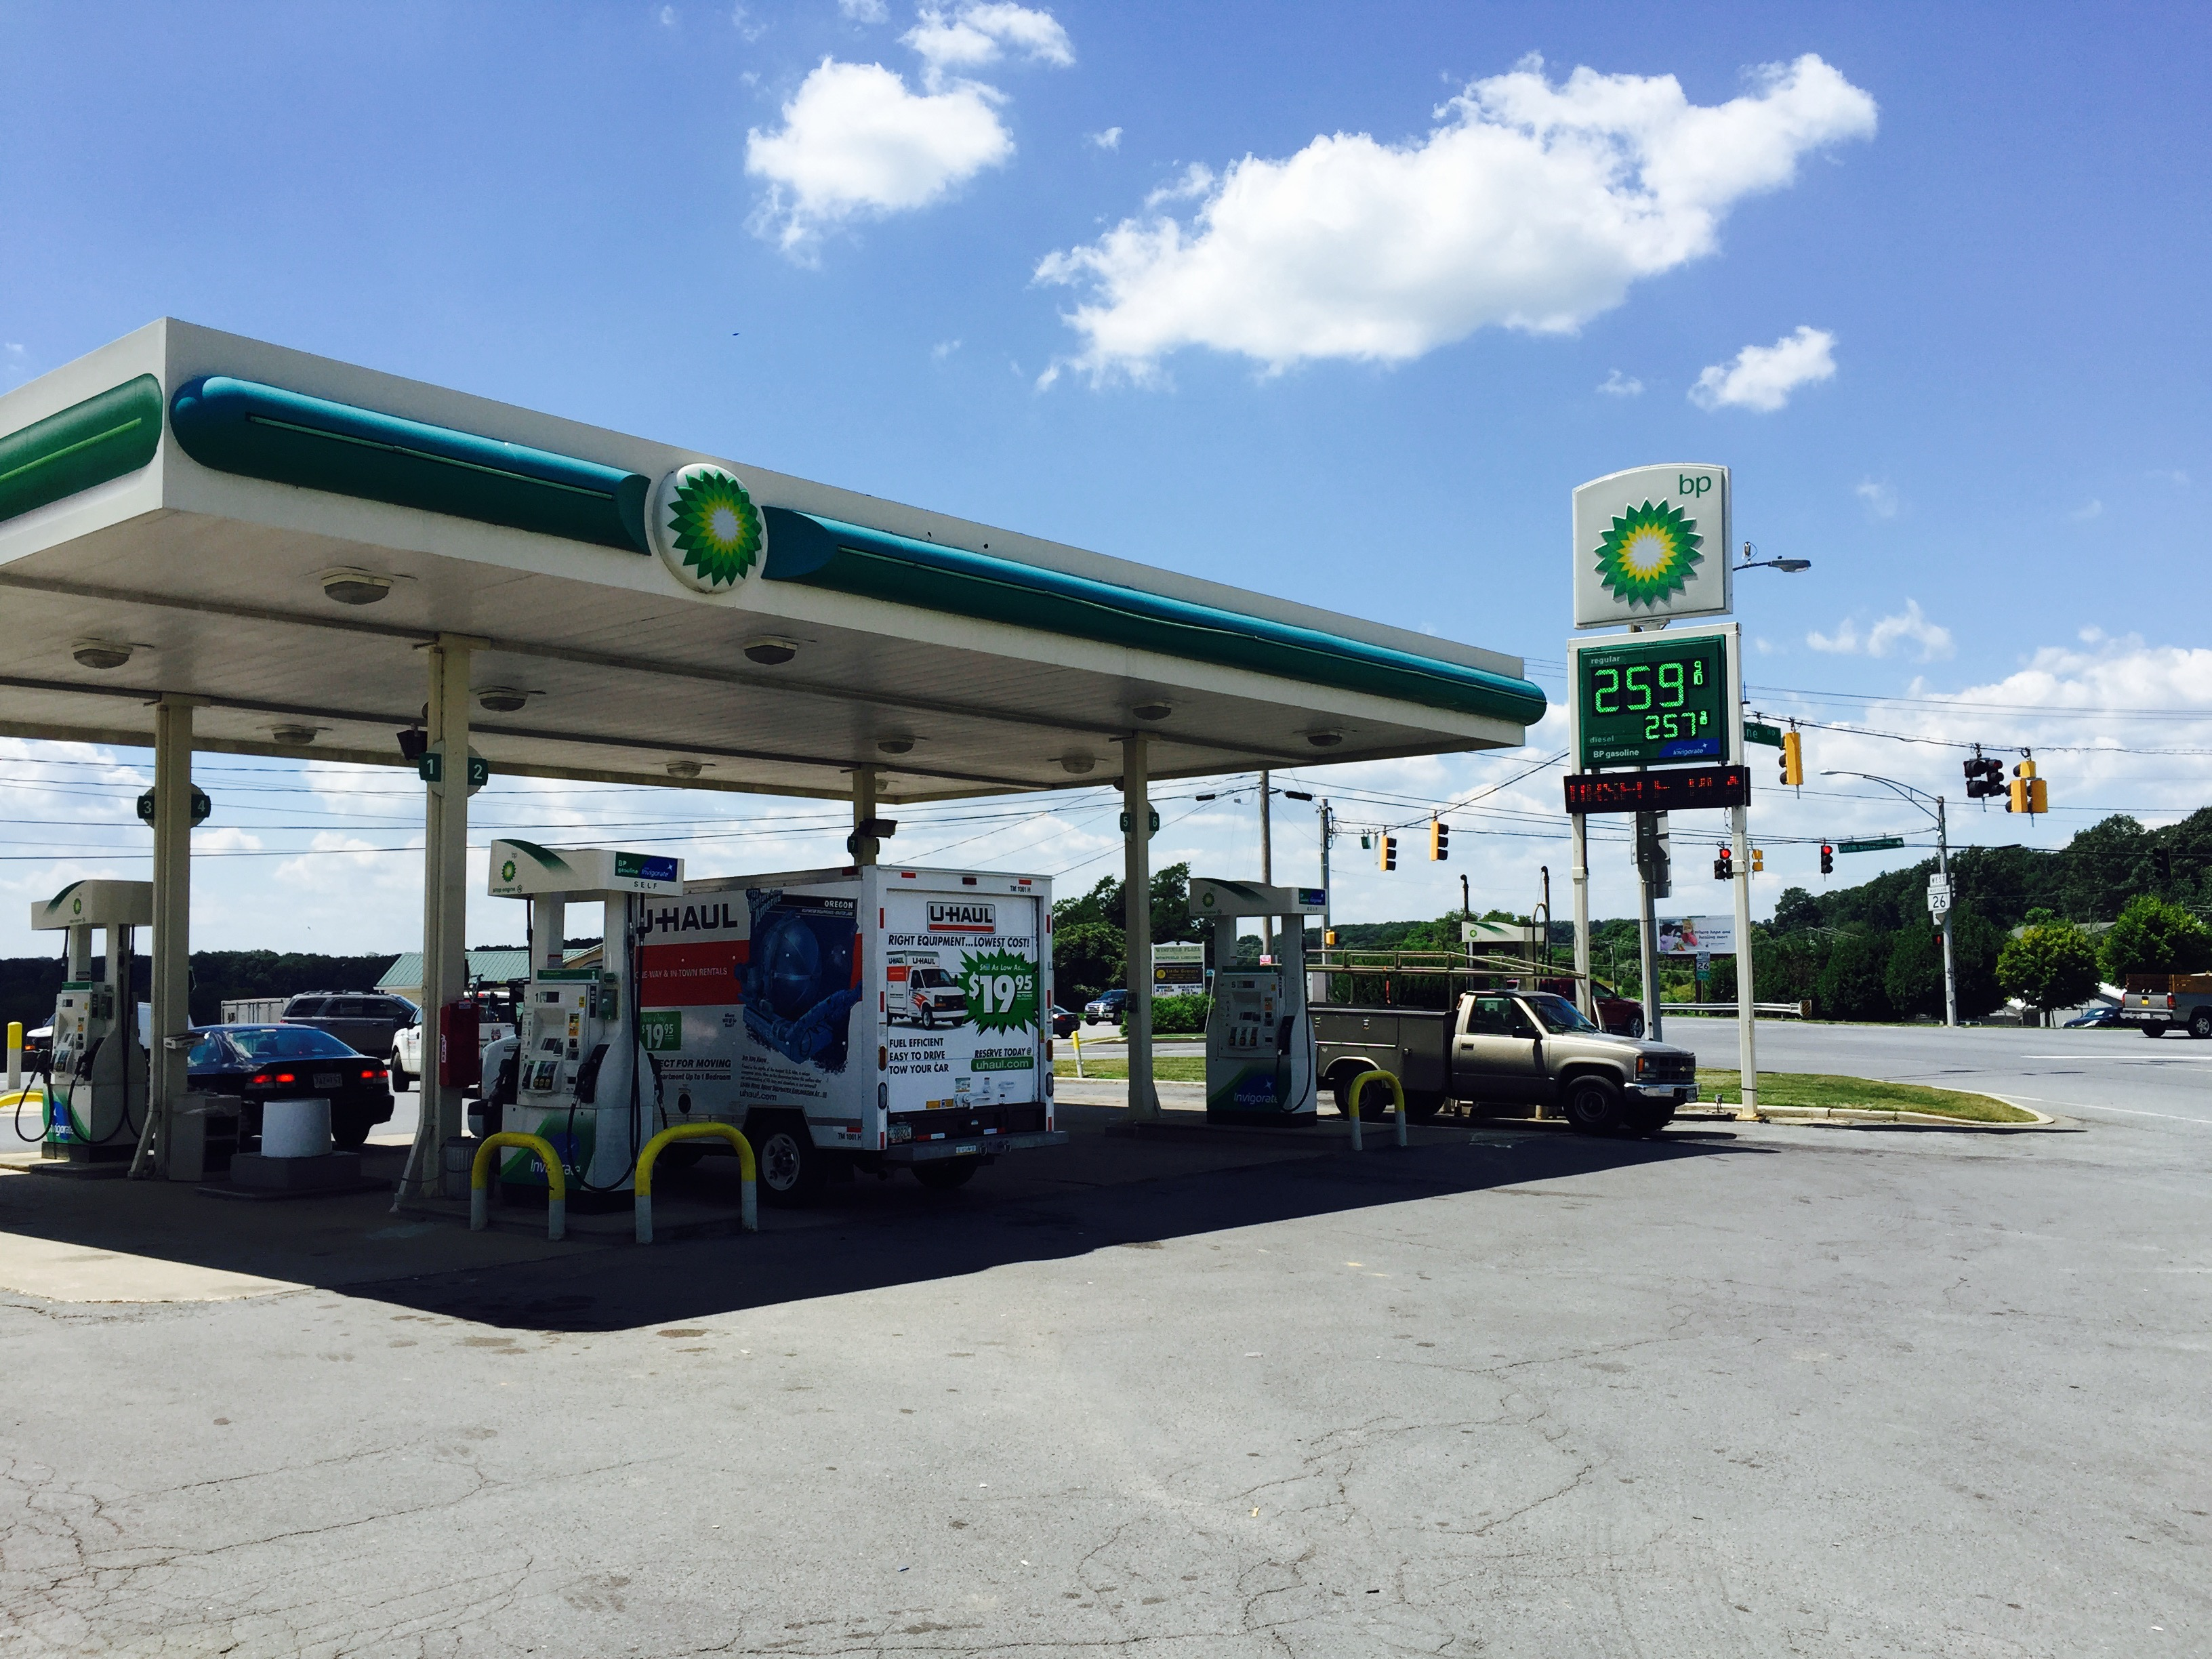 U-Haul: About: U-Haul Partners With Sykesvilles Winfield BP Gas Station